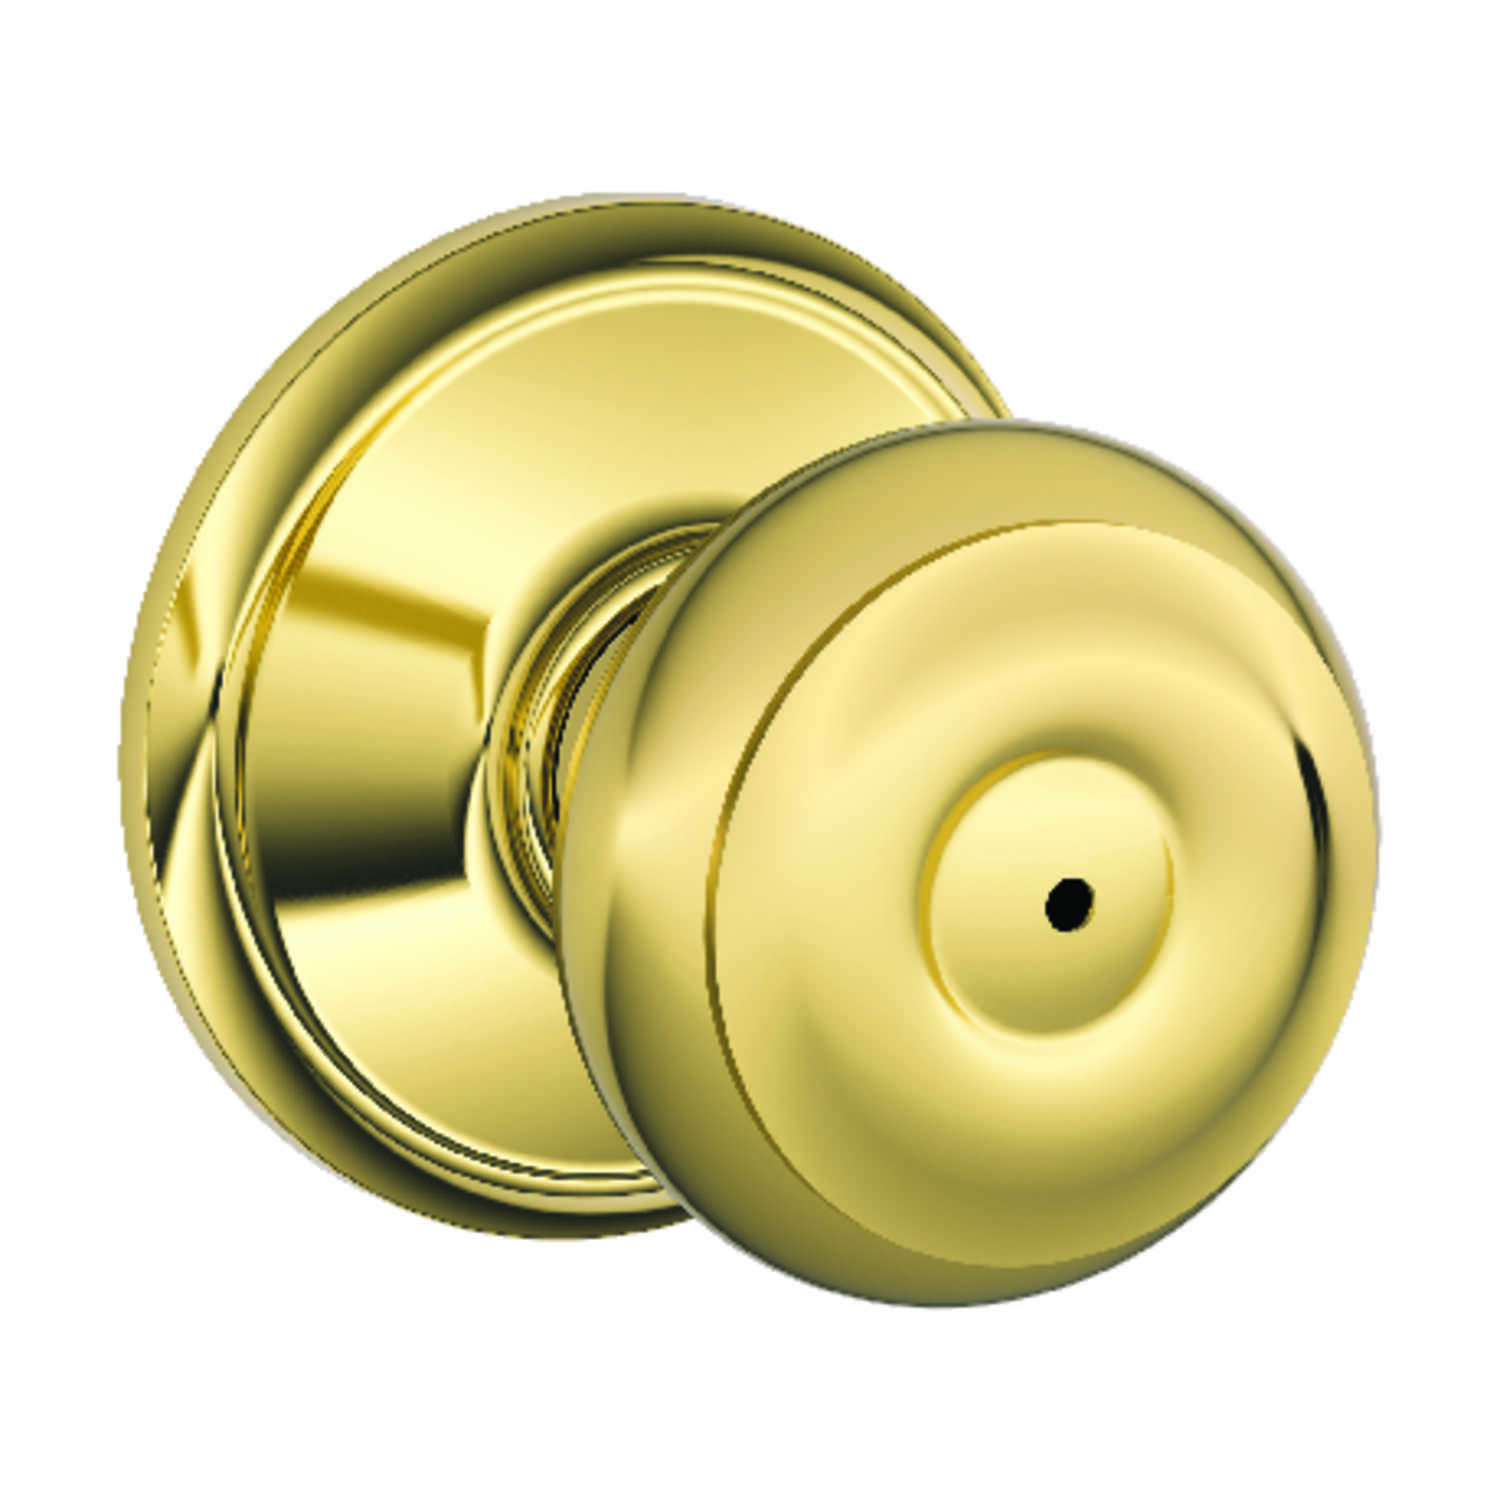 Schlage  Georgian  Bright Brass  Privacy Lockset  ANSI Grade 2  1-3/4 in.